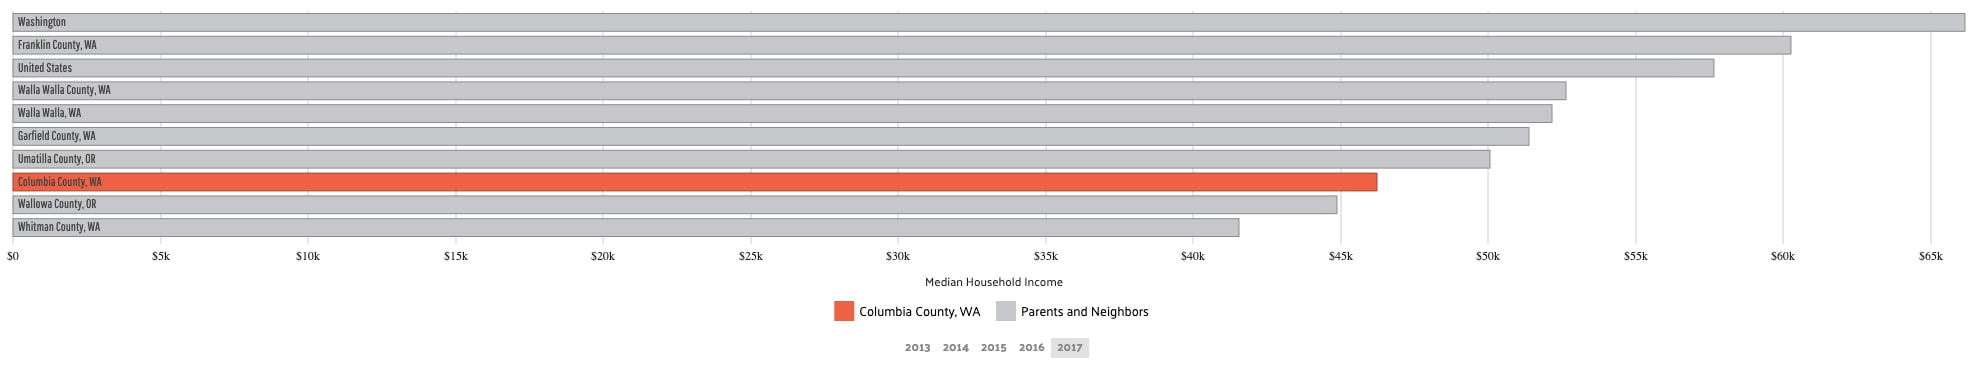 Median Household Income_columbia